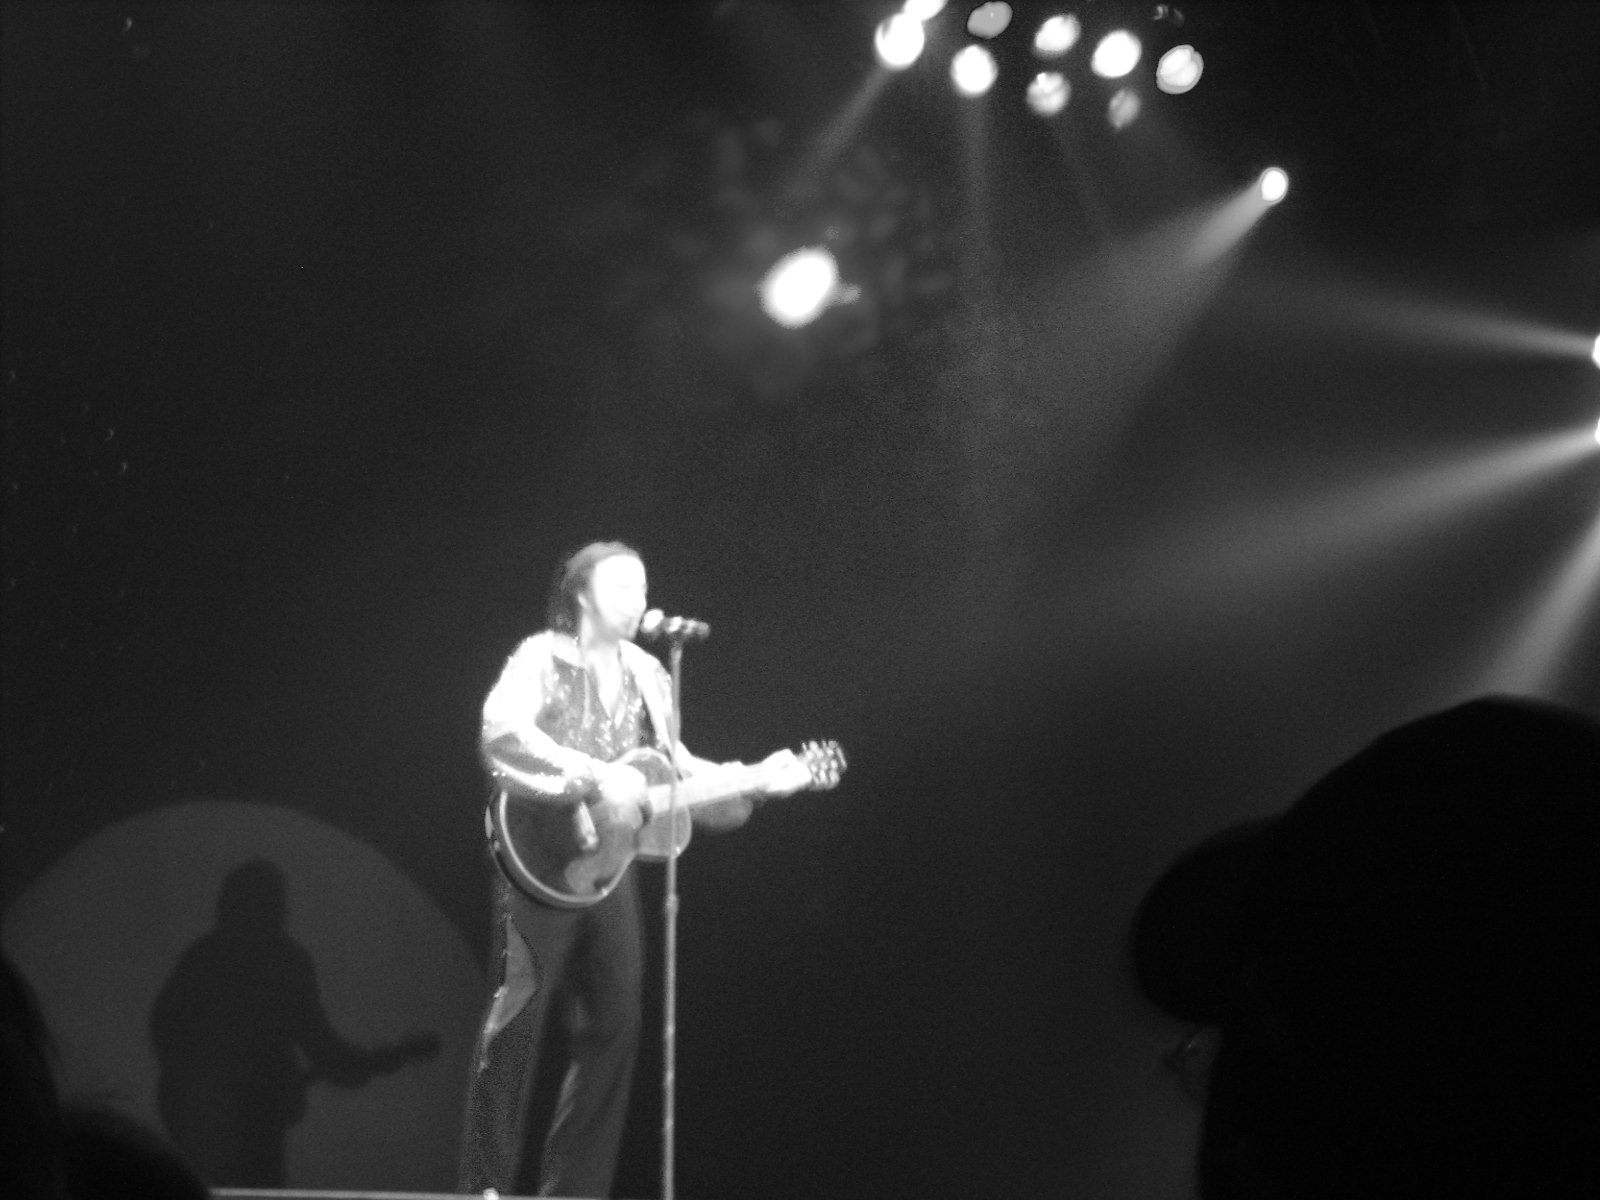 Onstage at the Hilton in Atlantic City NJ: Neil Diamond impersonator Tom Sadge. Photo: Marion Sadge - webmaster of TomSadge.com